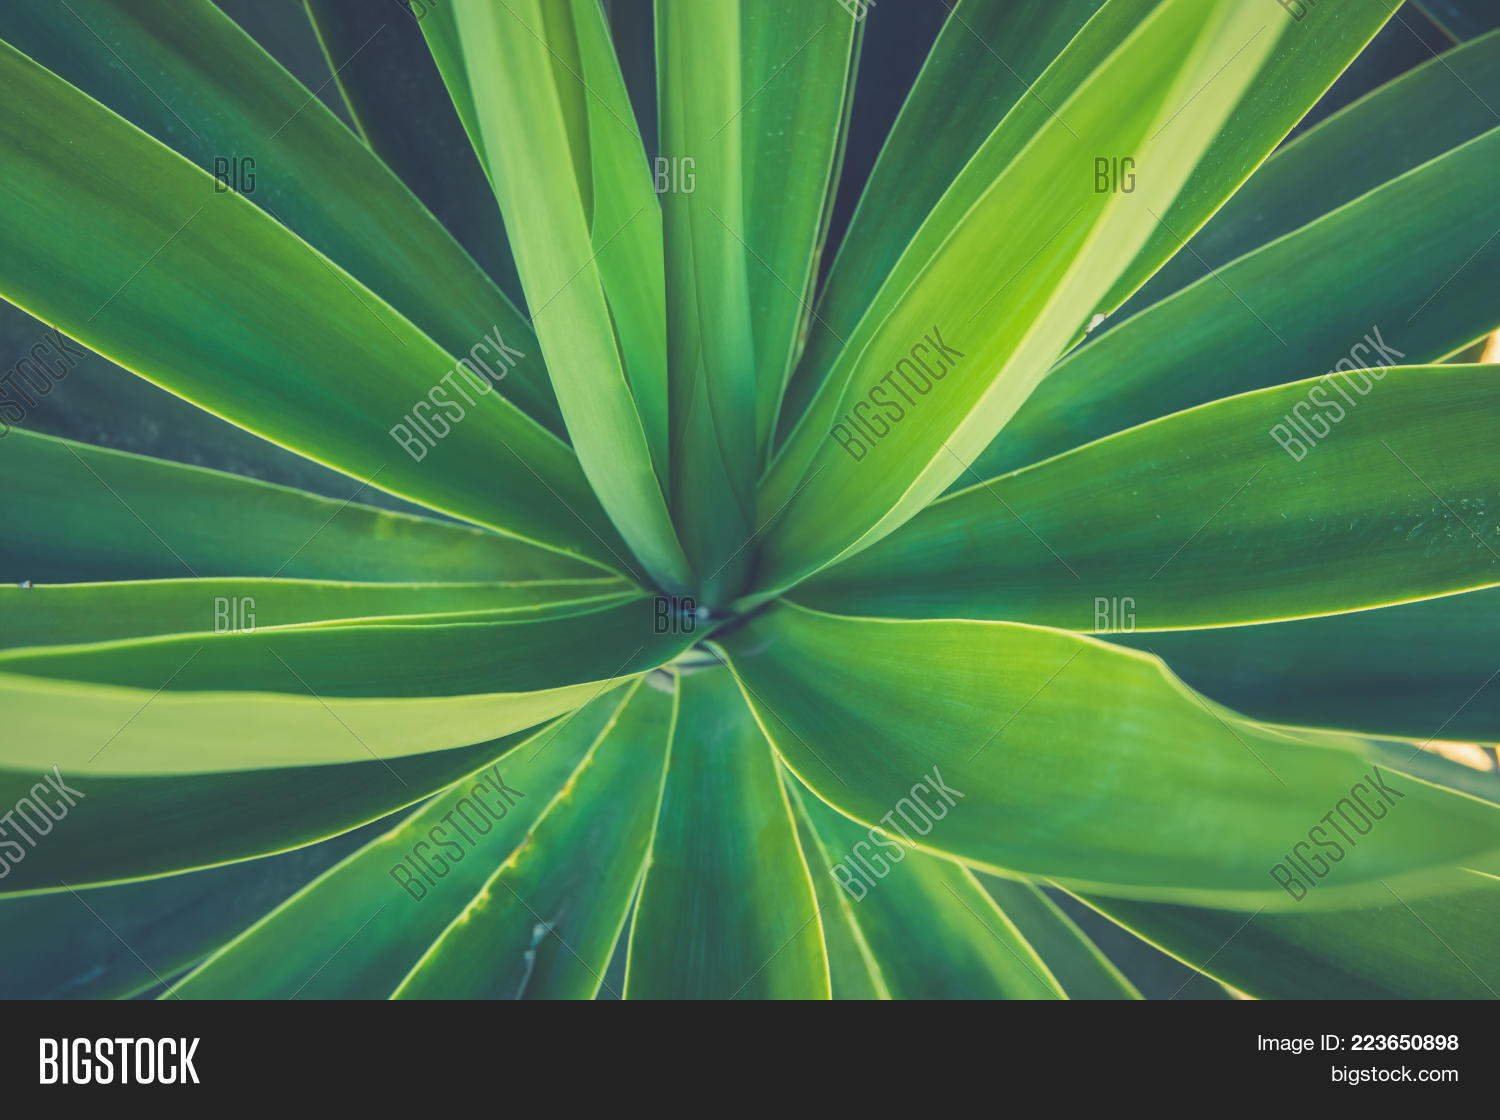 Rosette Of Palm Tree Leaves Growing In Flower Shale Beautiful Natural Geometrical Pattern Vibrant